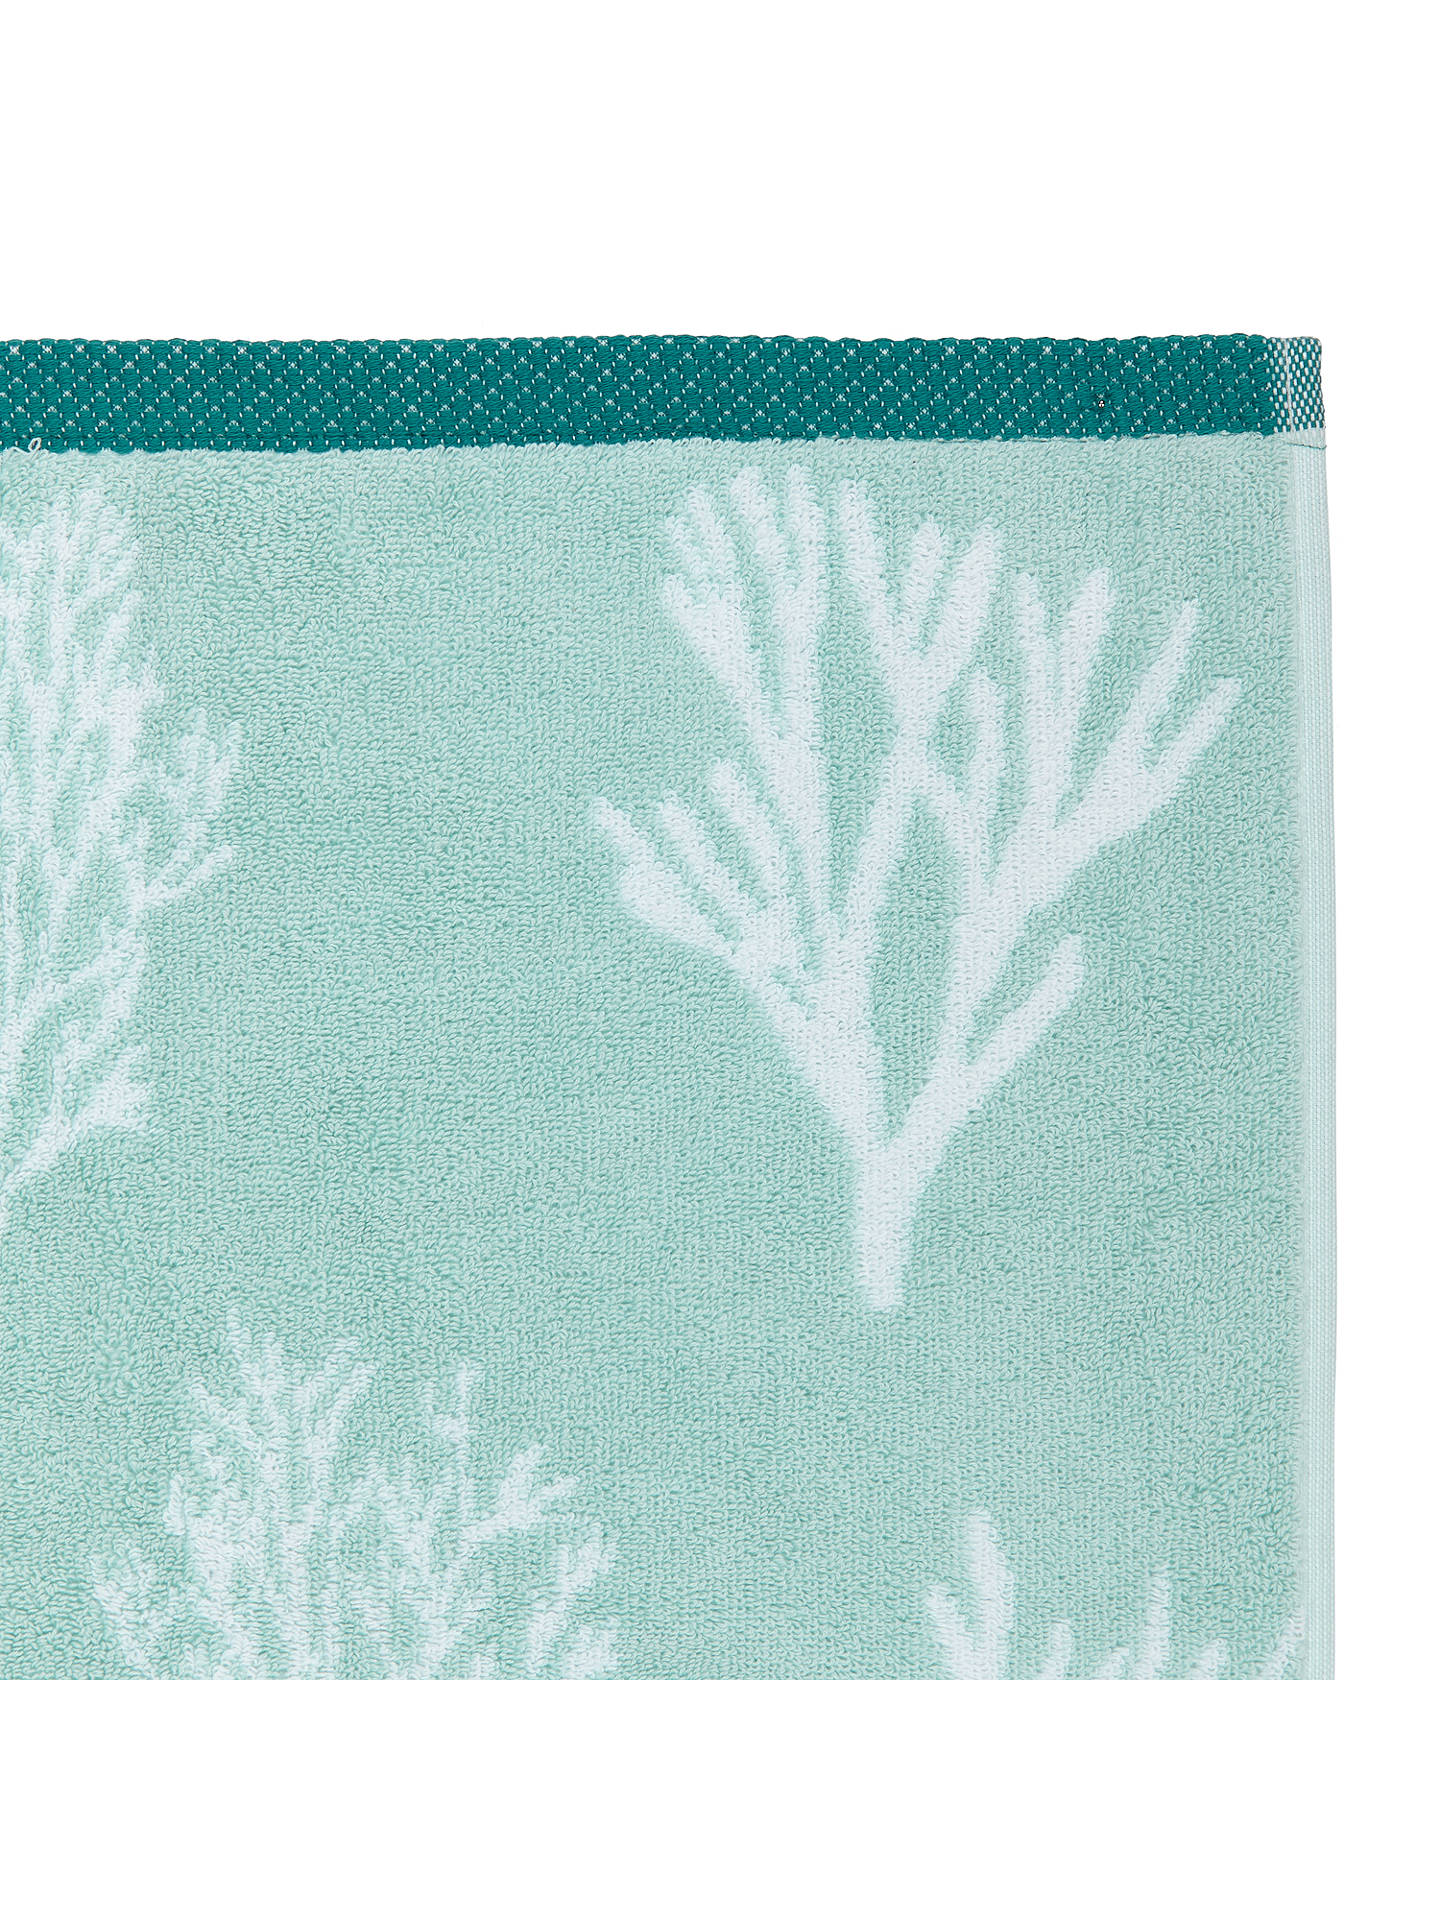 BuyJohn Lewis & Partners Coastal Coral Face Cloth, Pale Marine Online at johnlewis.com